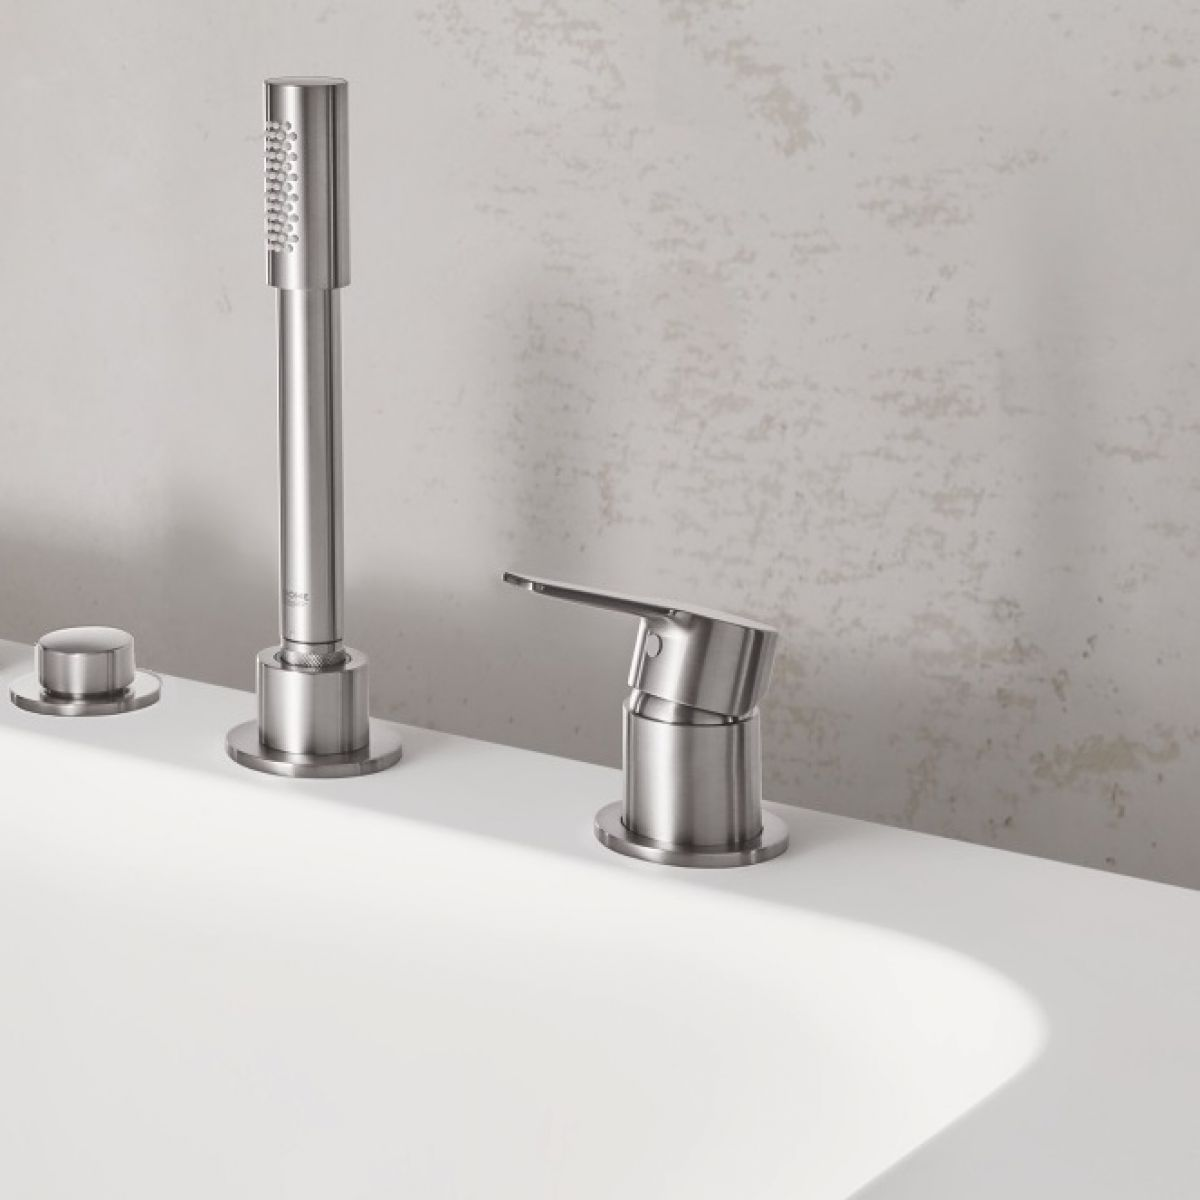 Grohe Lineare 3-hole Single Lever Bath Mixer with Shower Handset ...